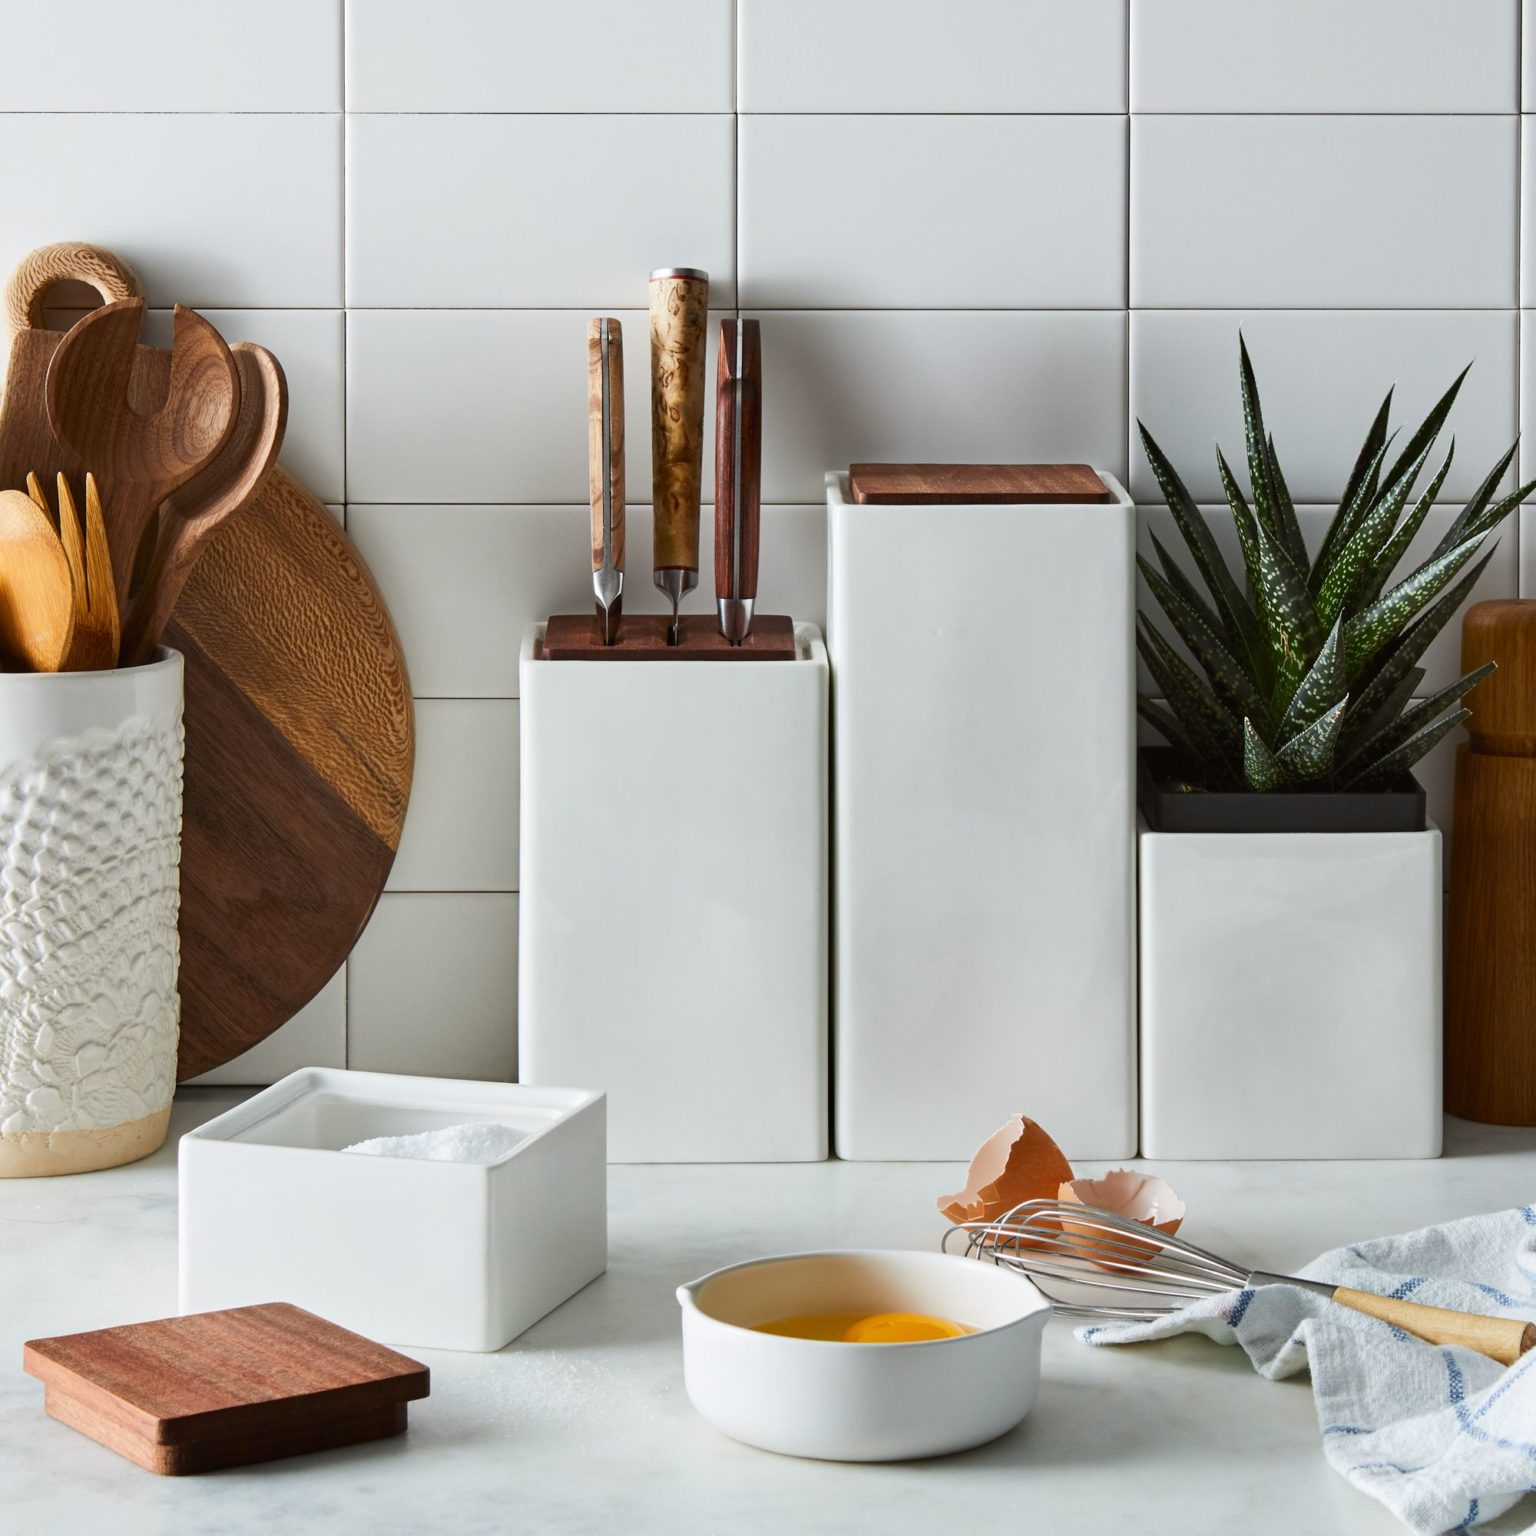 Modular Ceramic Countertop Set$99